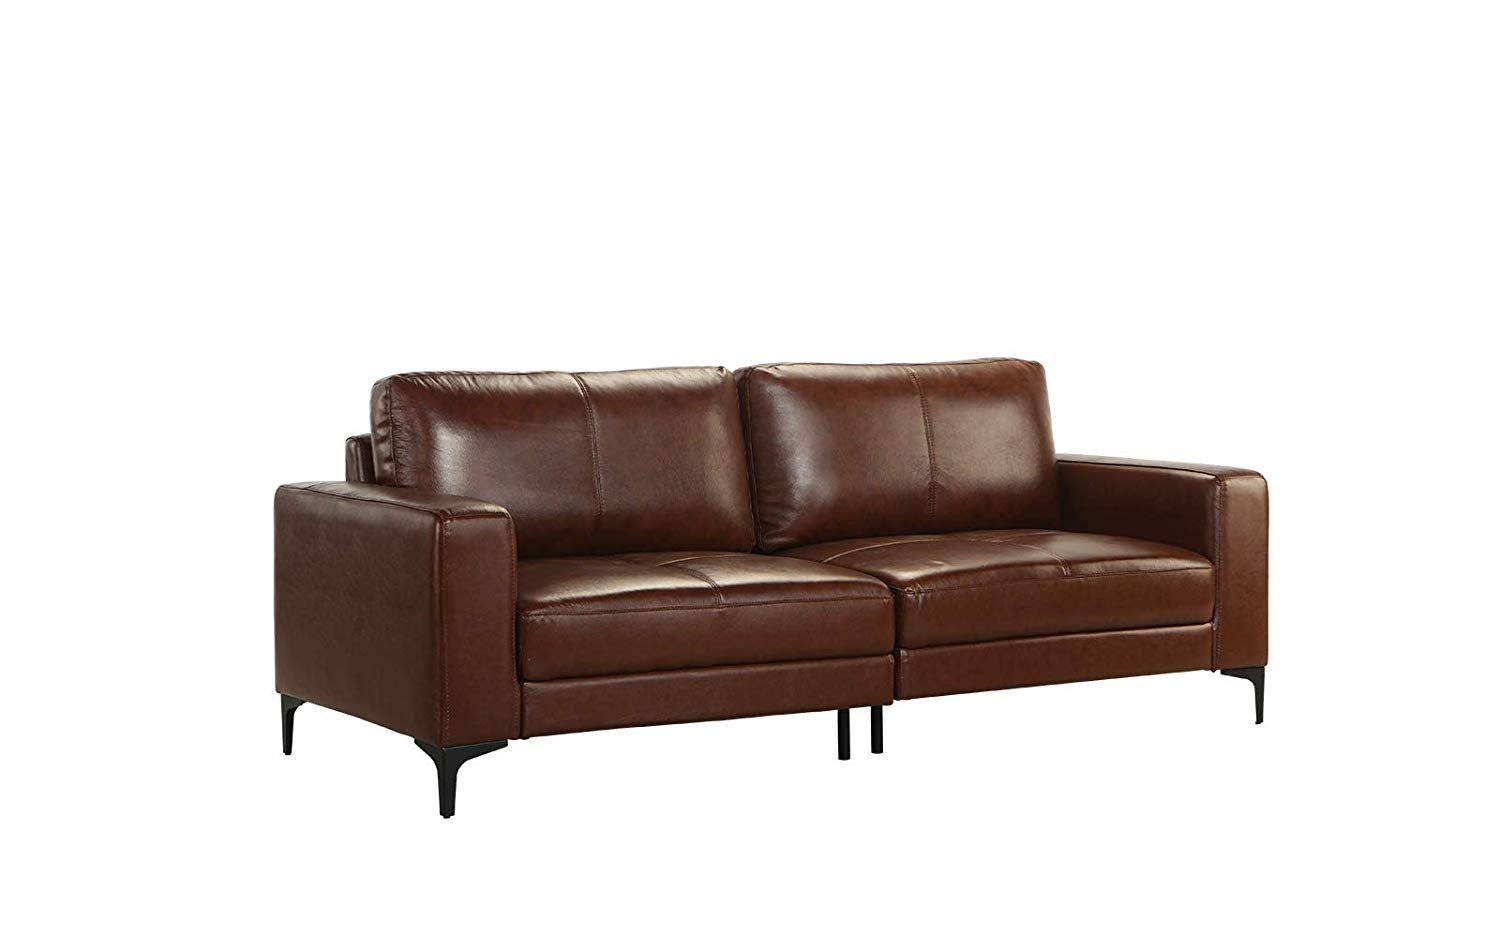 Details About Mid Century Modern Upholstered Leather Match Sofa 80 3 W Inch Couch Dark Brown